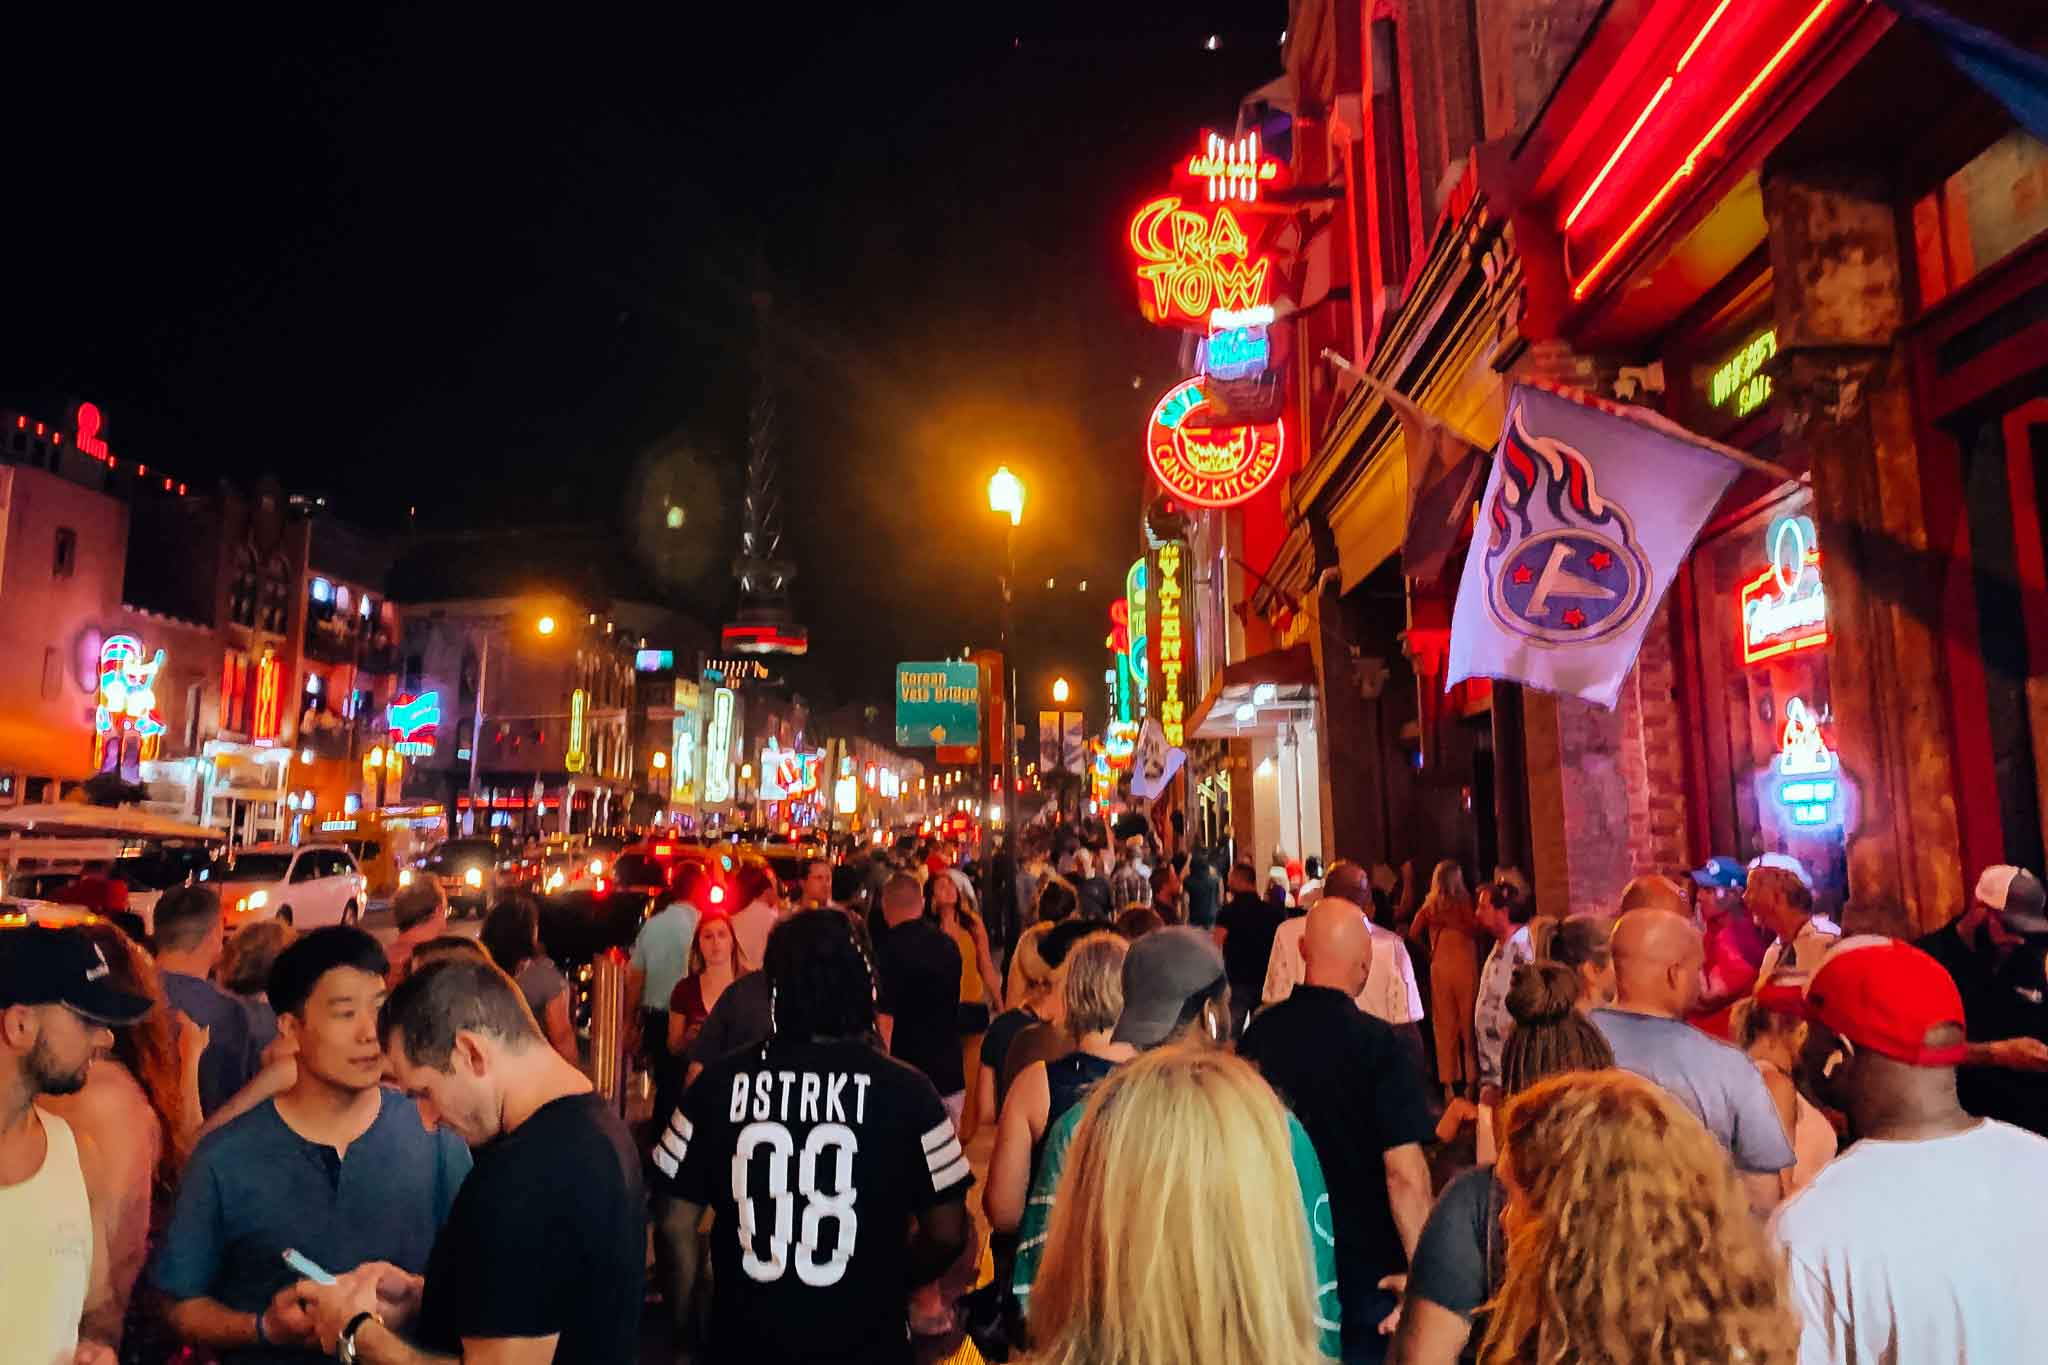 Nashville street at night filled with people walking to bars